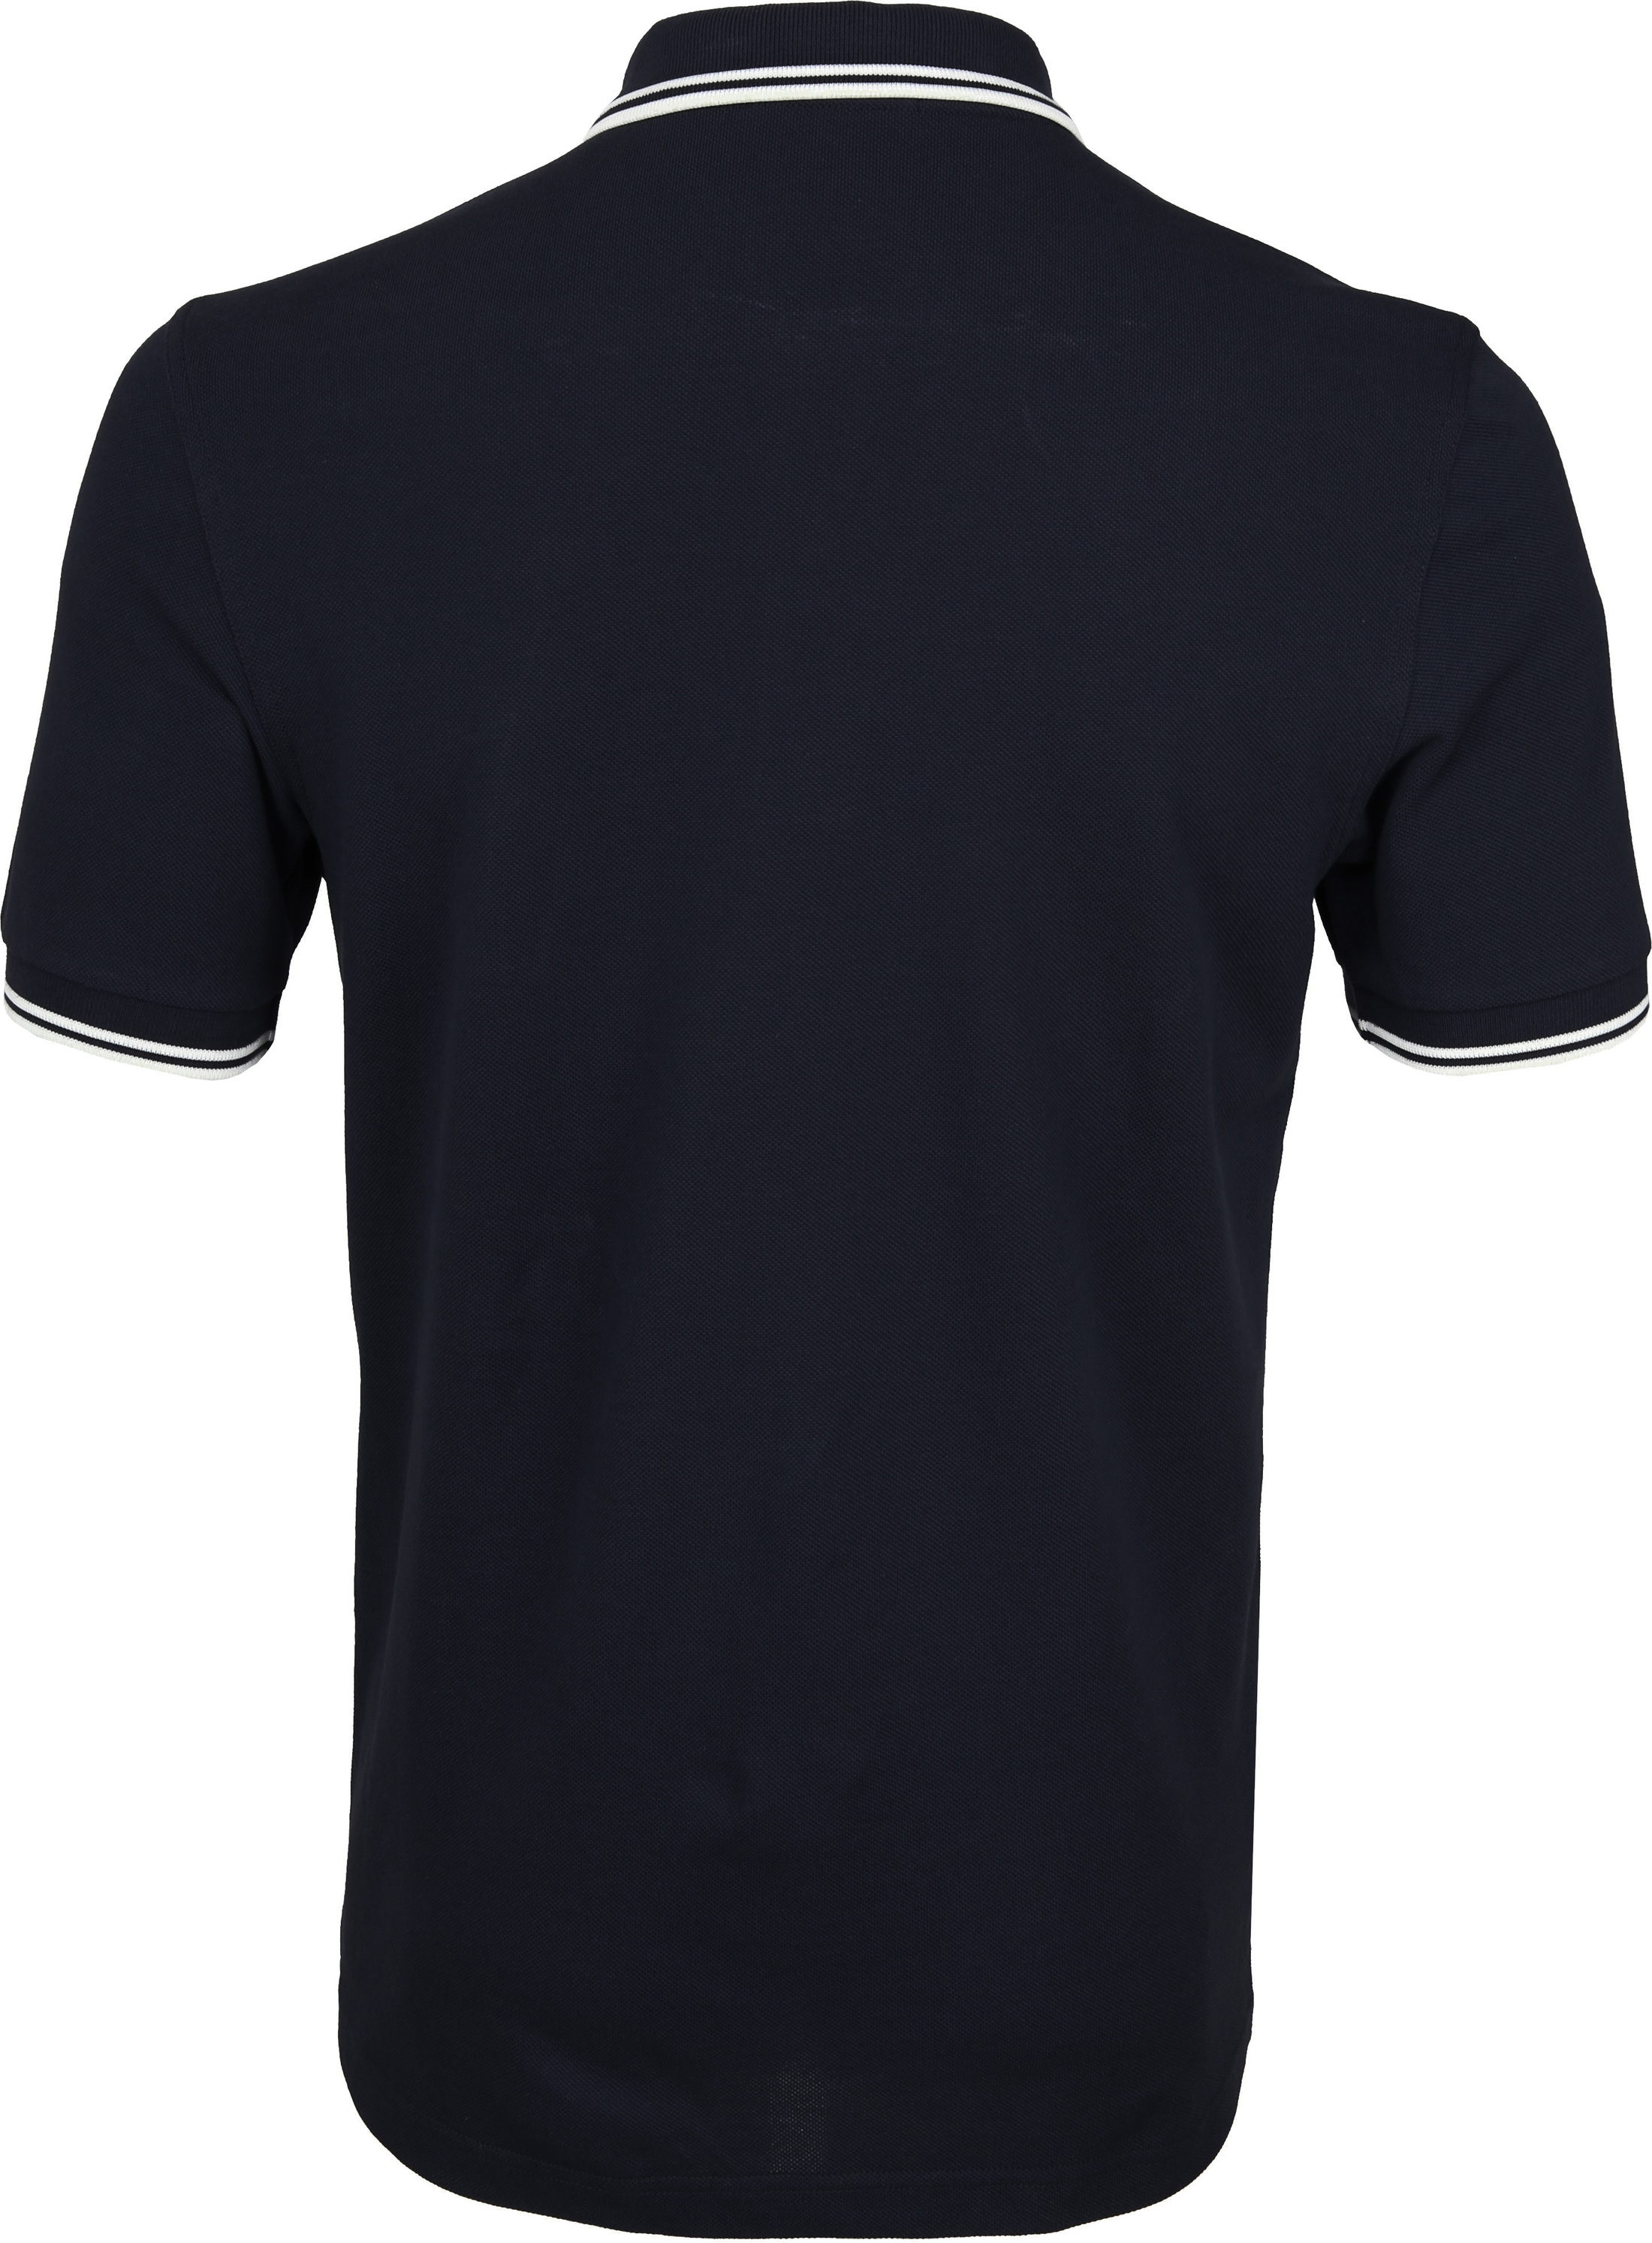 Fred Perry Polo Navy White foto 2